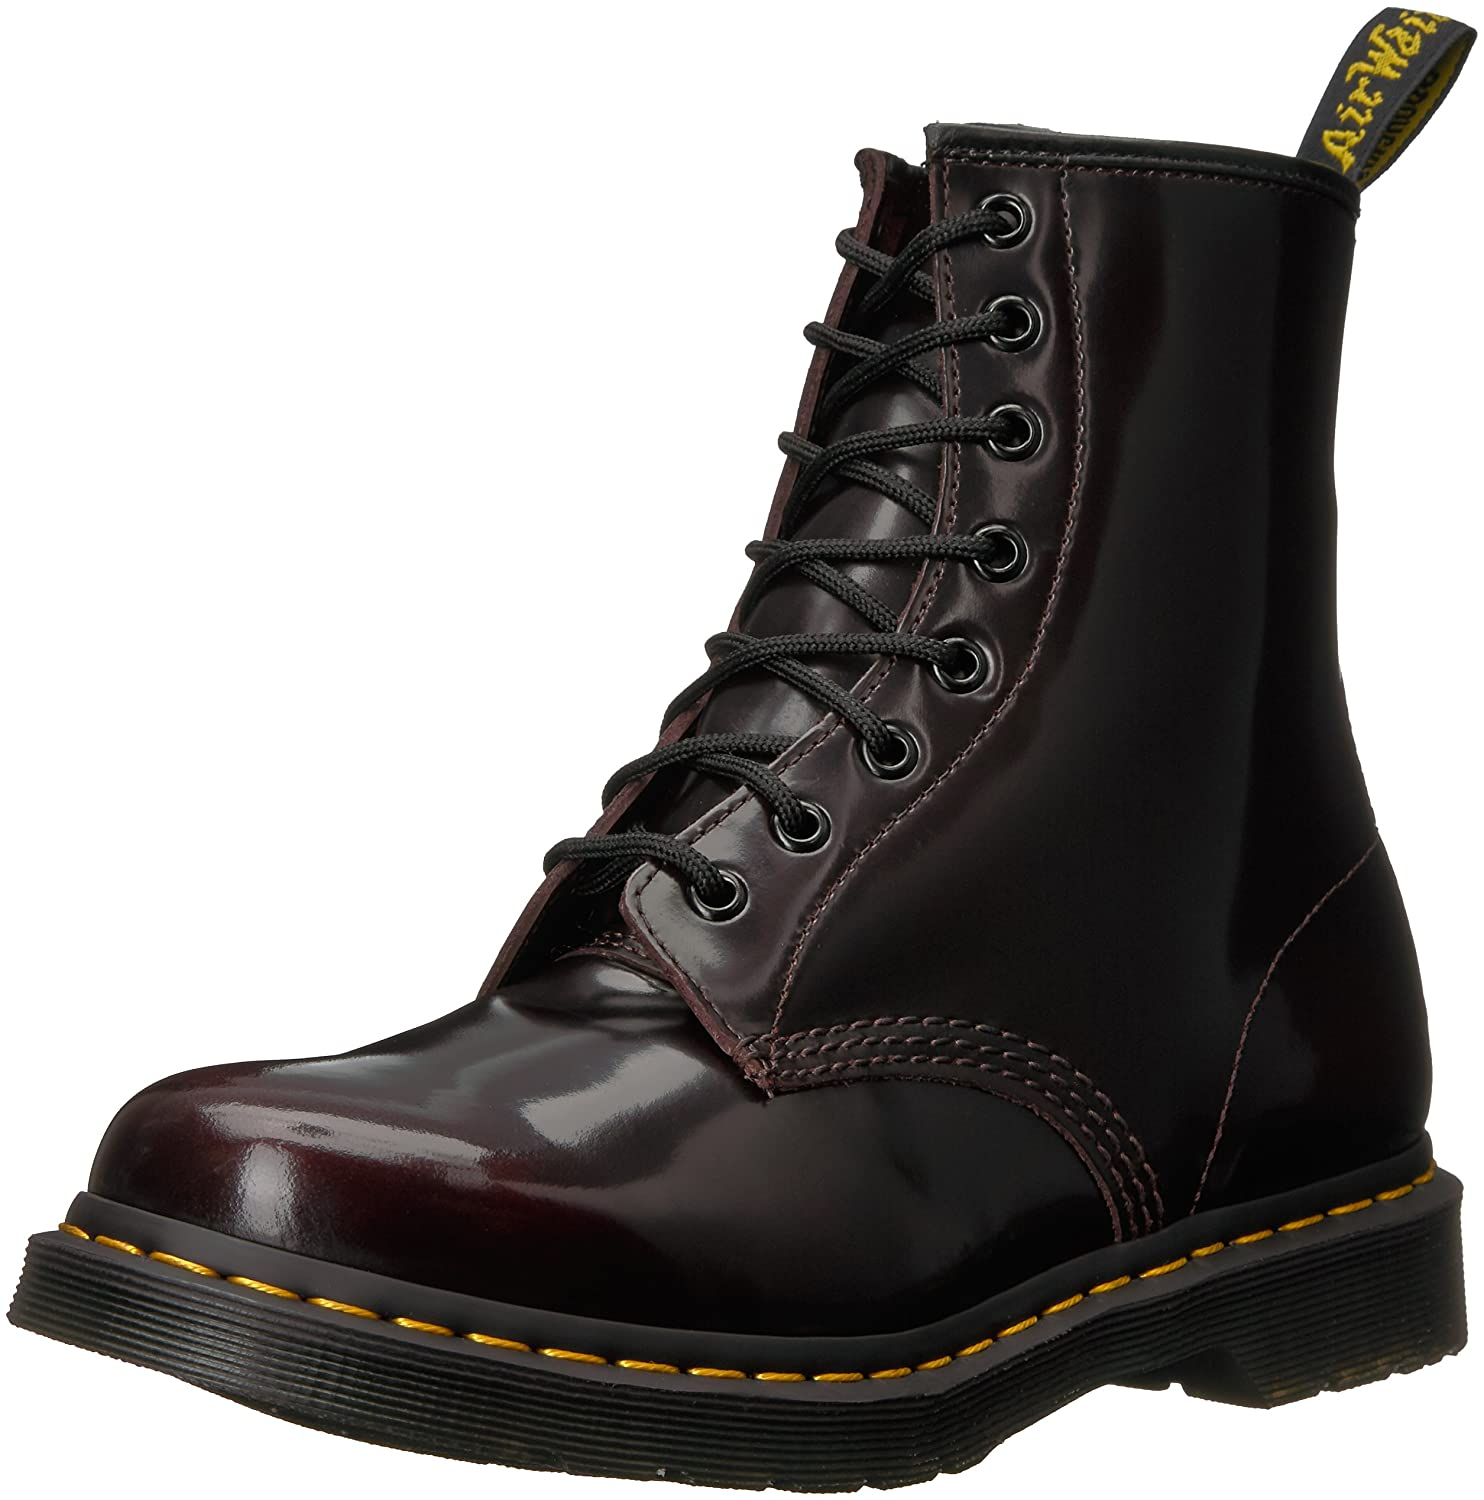 Dr. Martens Men's 1460 Combat Boot, 8.5 B(M) US Women/7.5 D(M) US Men B0046EBP3C 5 B(M) US|Cherry Red